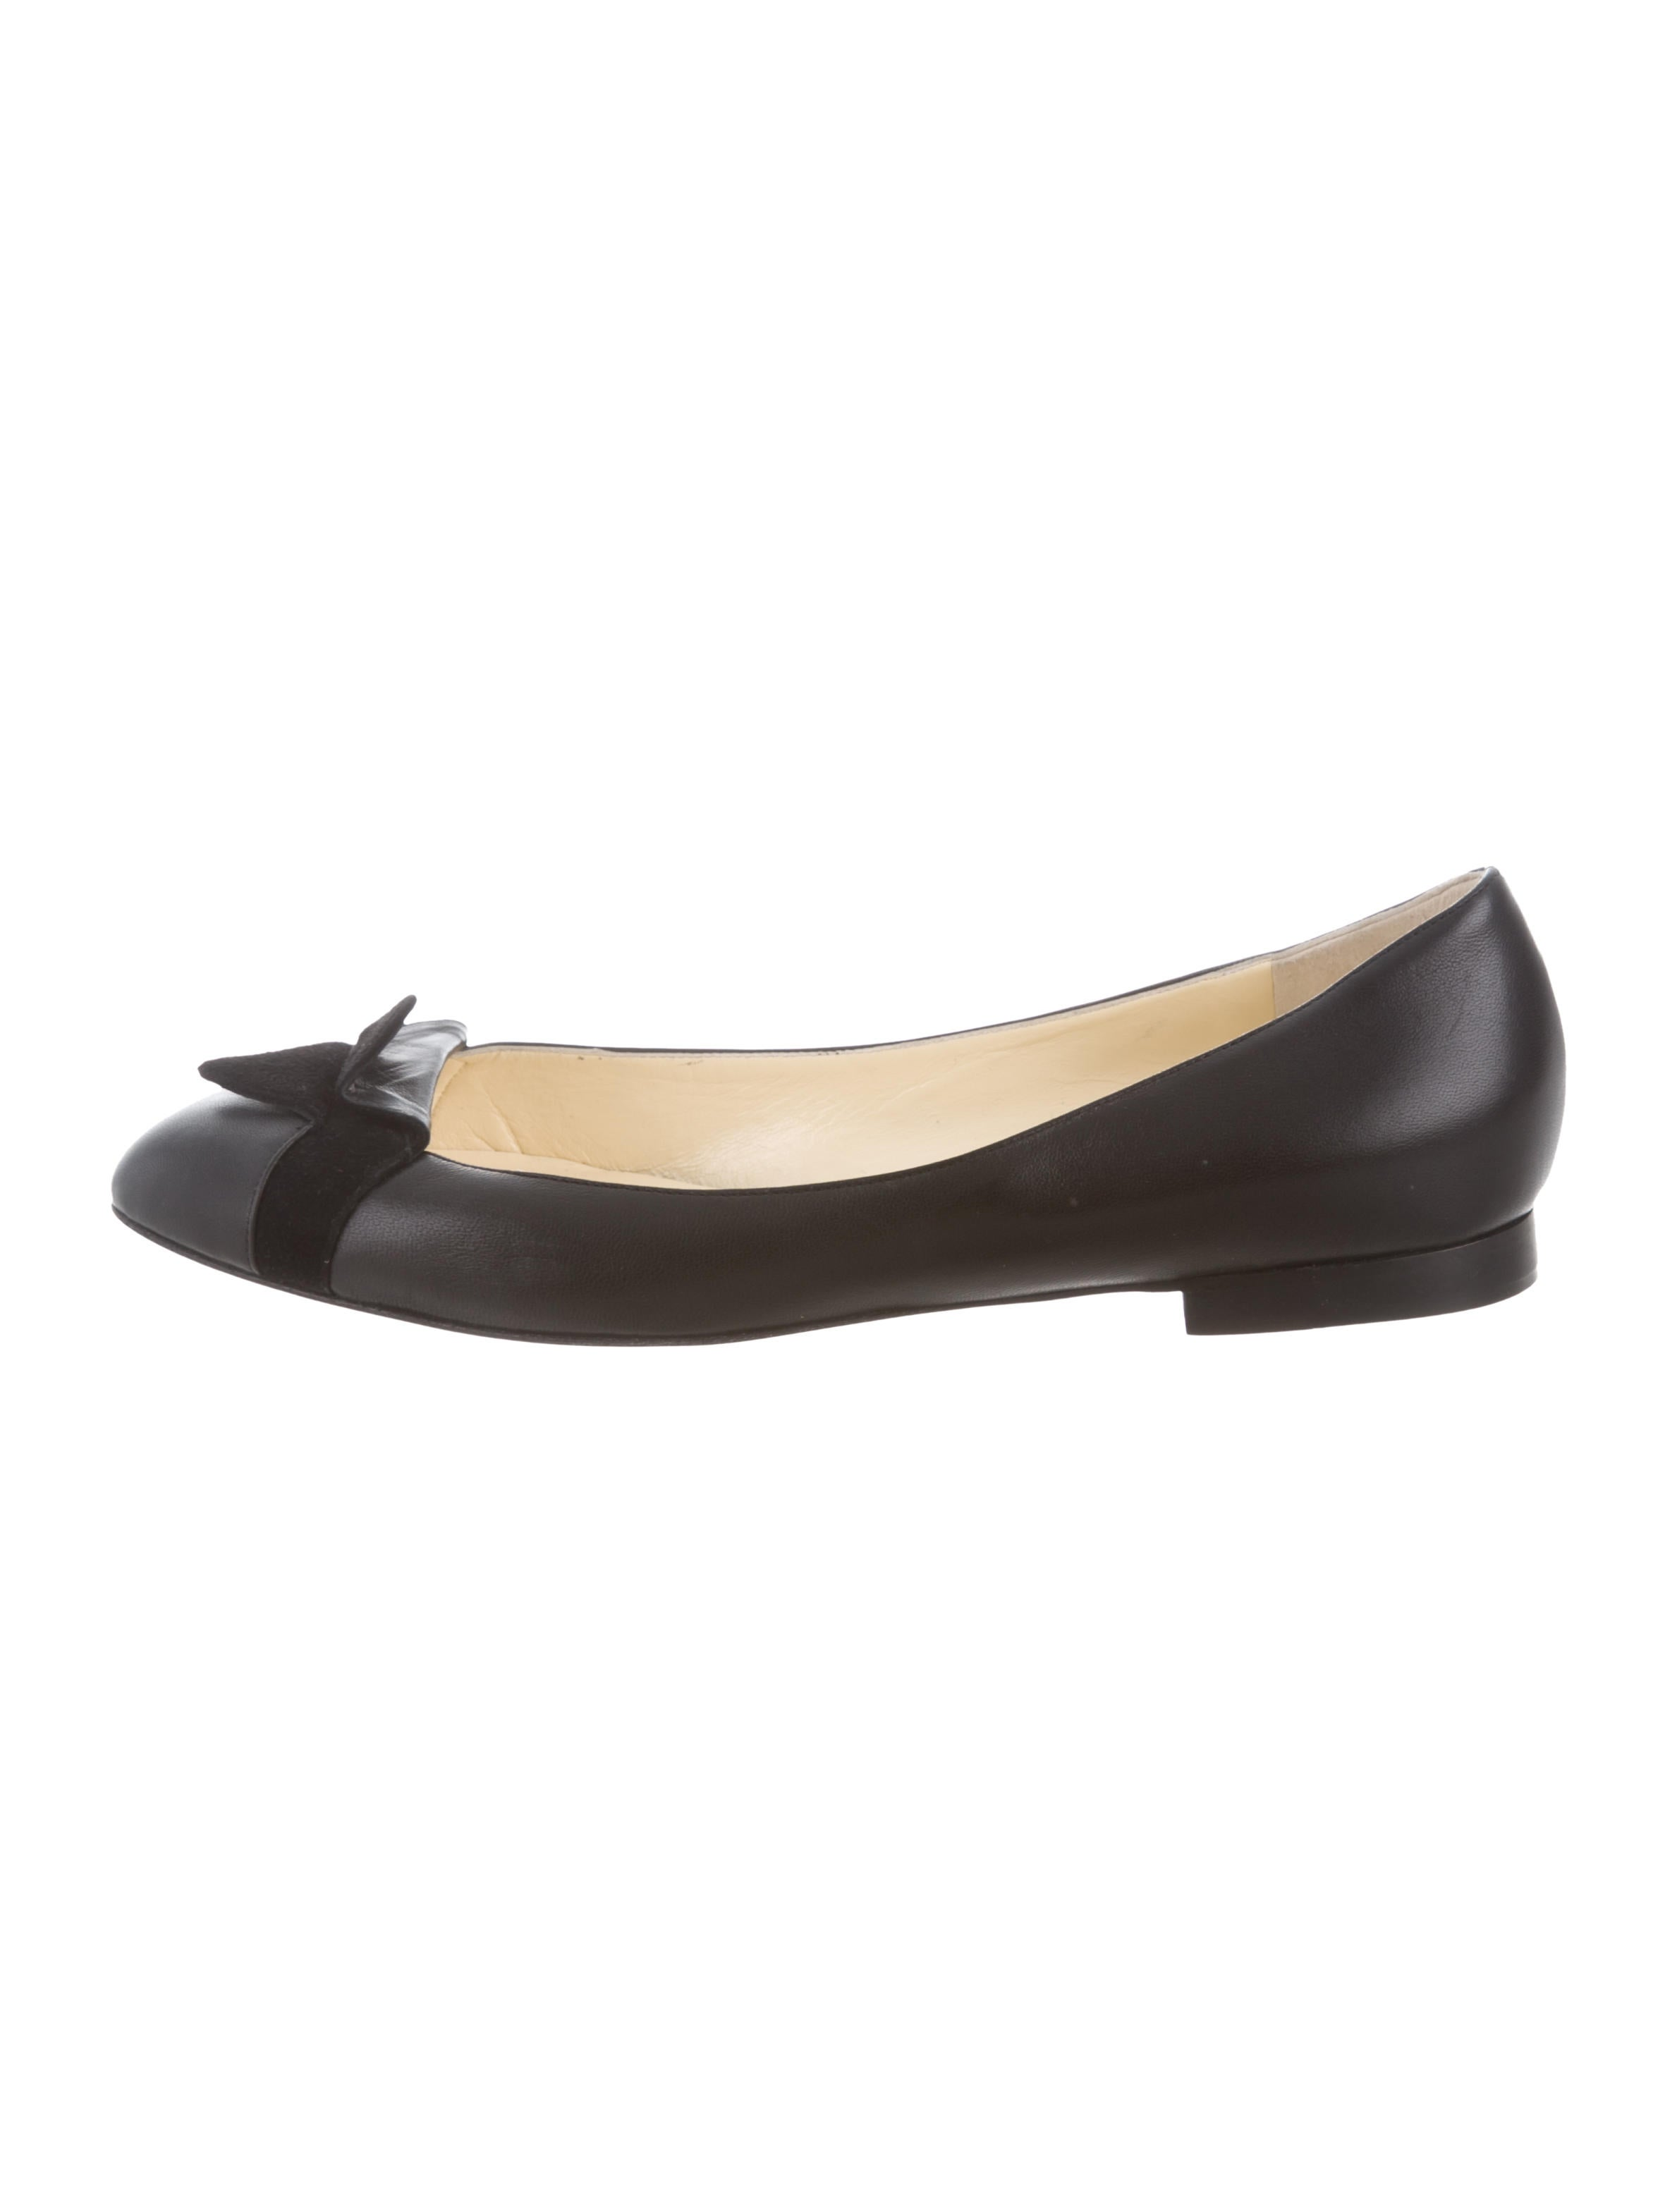 classic Sarah Flint Suede-Accented Leather Flats sale with mastercard 3qrJ6O